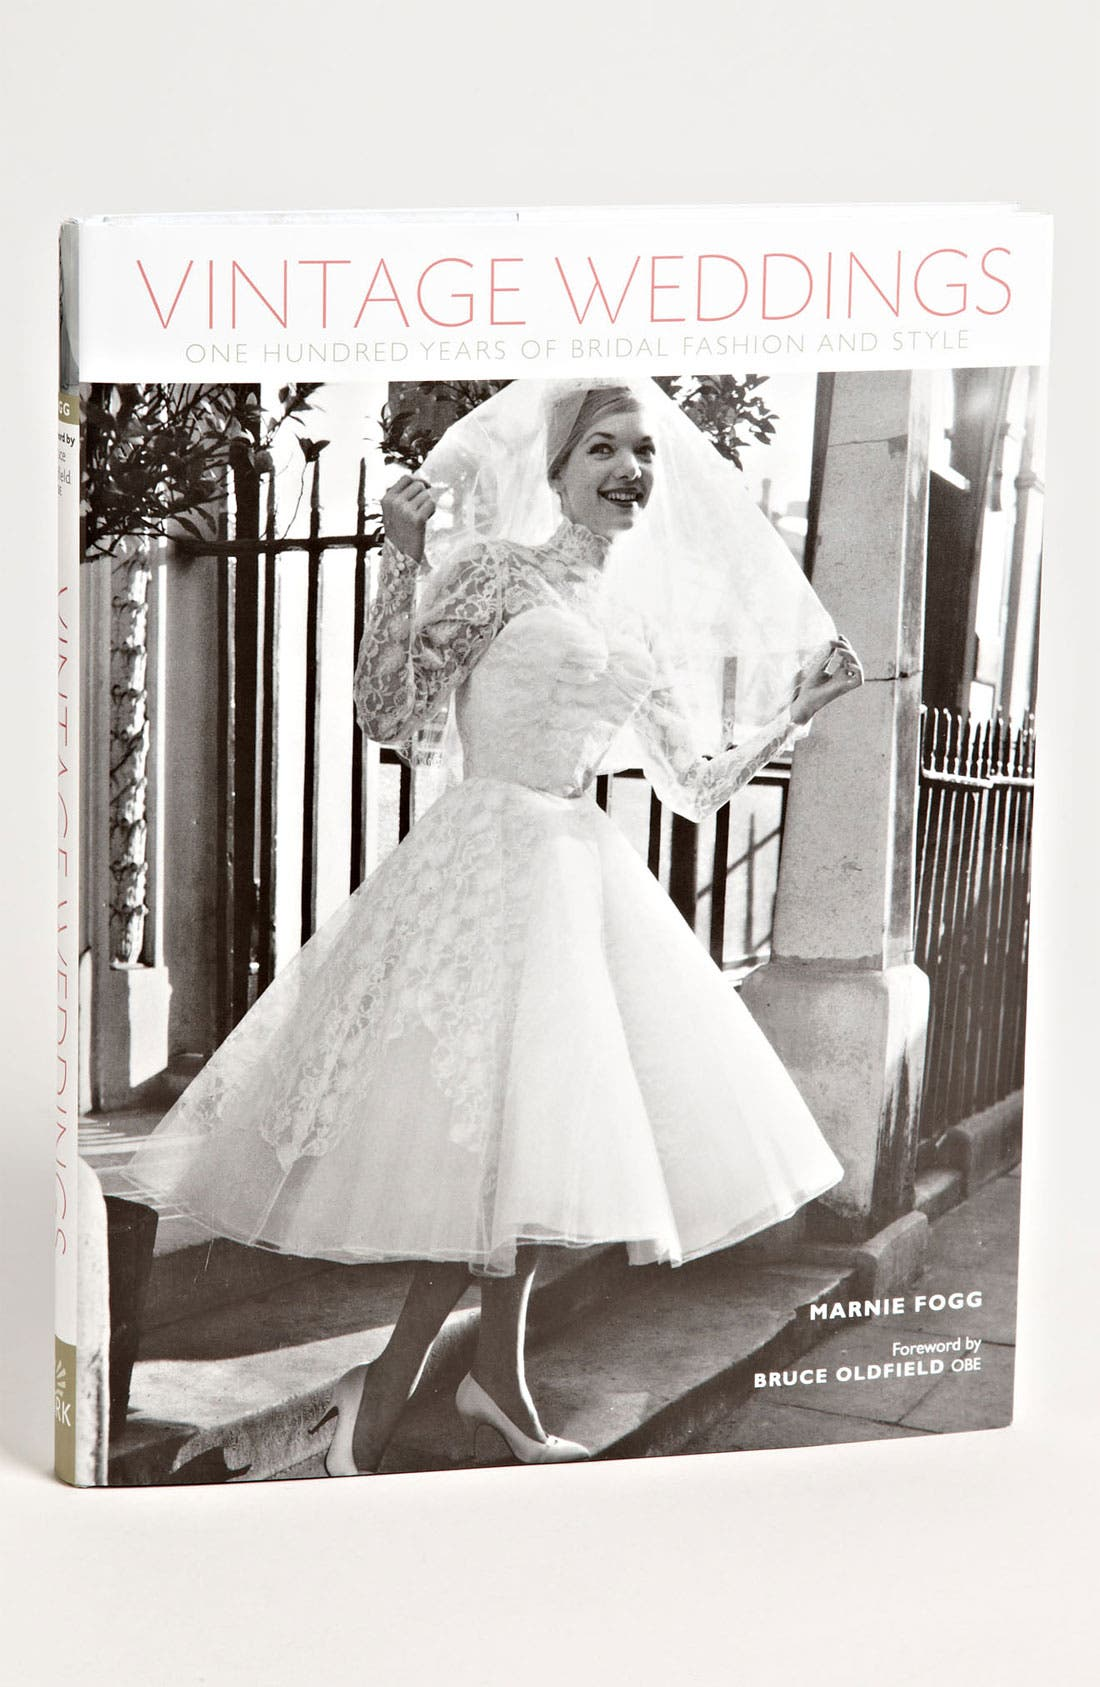 Main Image - 'Vintage Weddings: One Hundred Years of Bridal Fashion & Style' Book